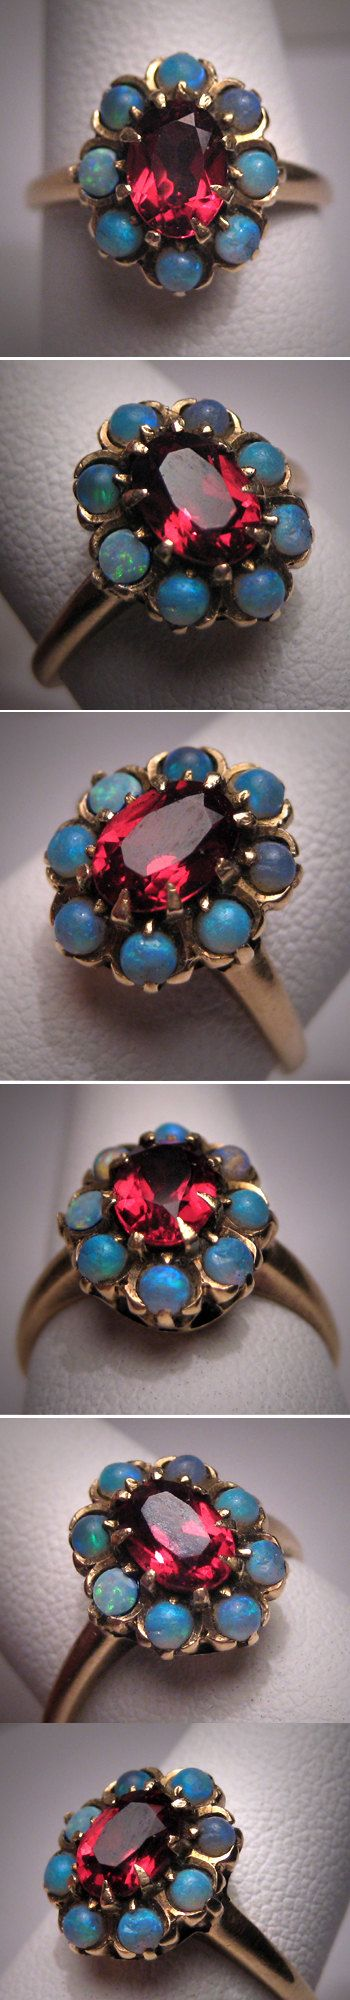 Pin by Carey SmithDelbuono on Want Antique jewelry